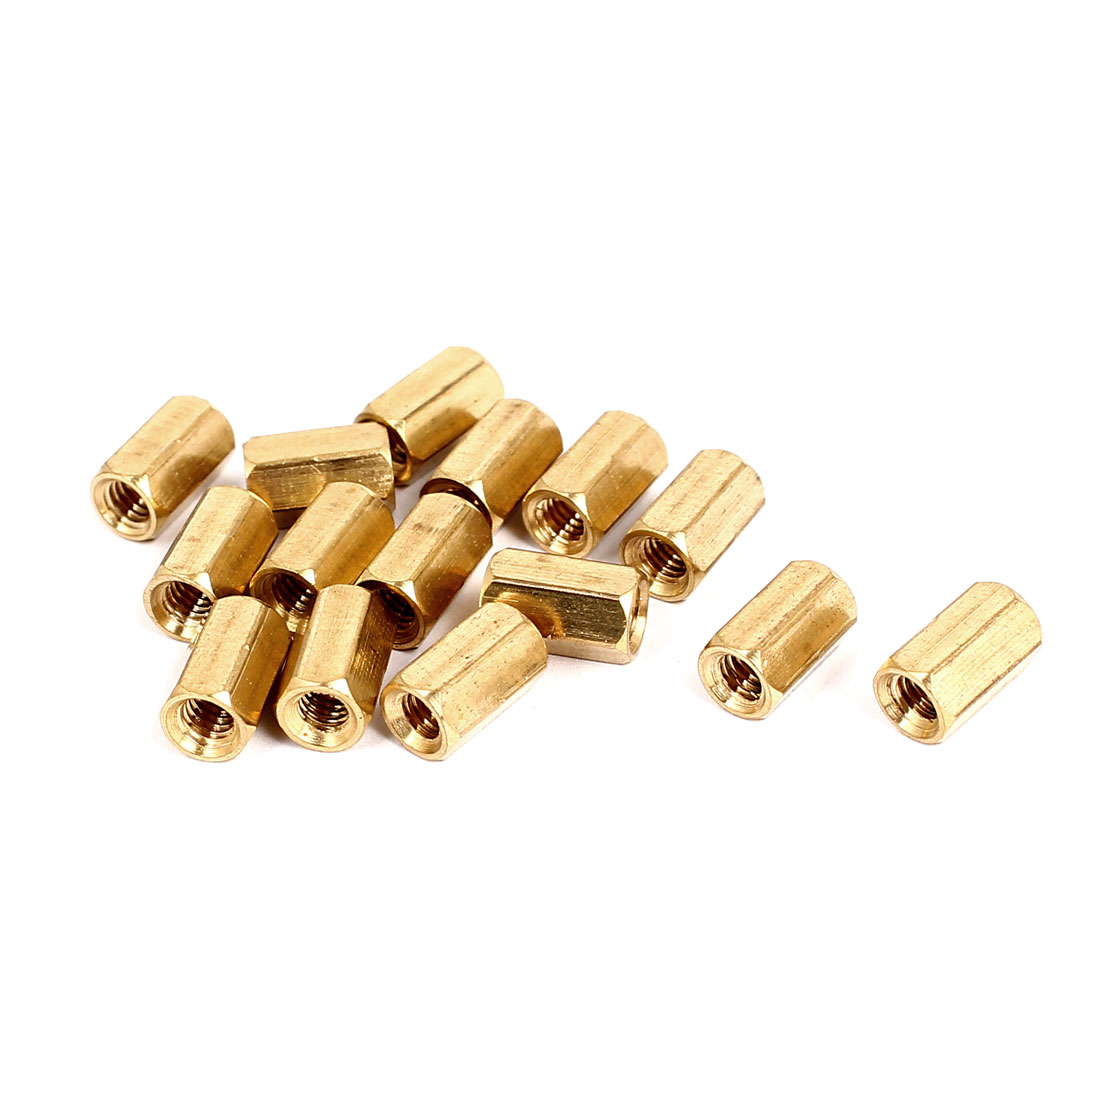 M4x10mm Brass Hex Hexagonal Female Threaded Standoff Spacer Pillars 15pcs